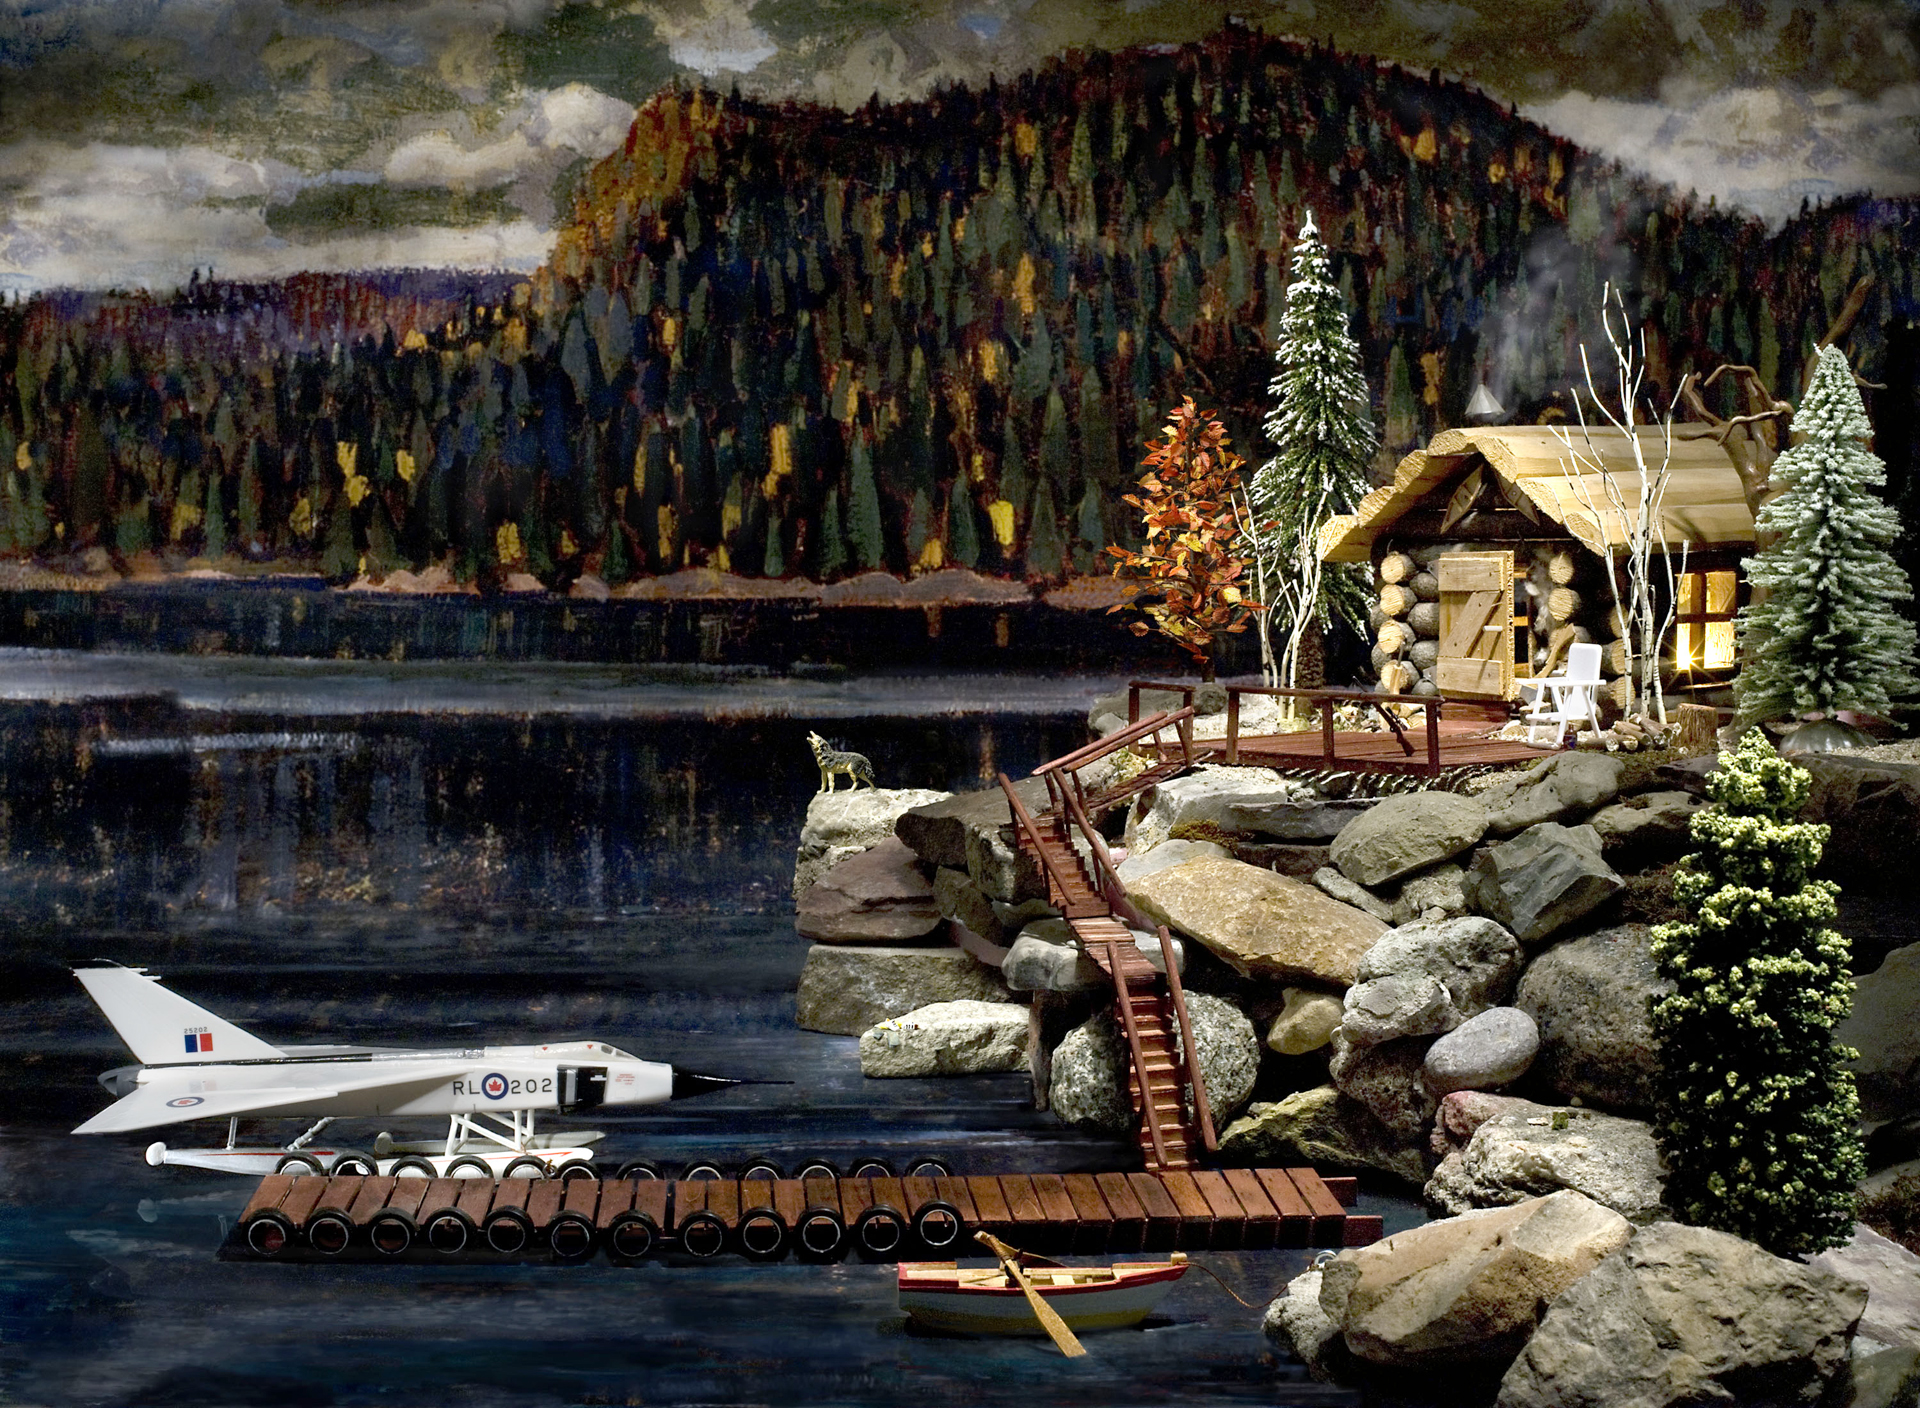 In this autumn scene set on a mountain lake, a log cabin is perched on a rocky point. Moored at a wooden dock is a scale model of the CF-105 Arrow, retrofitted as a sea plane and bearing the Royal Canadian Air Force roundel.